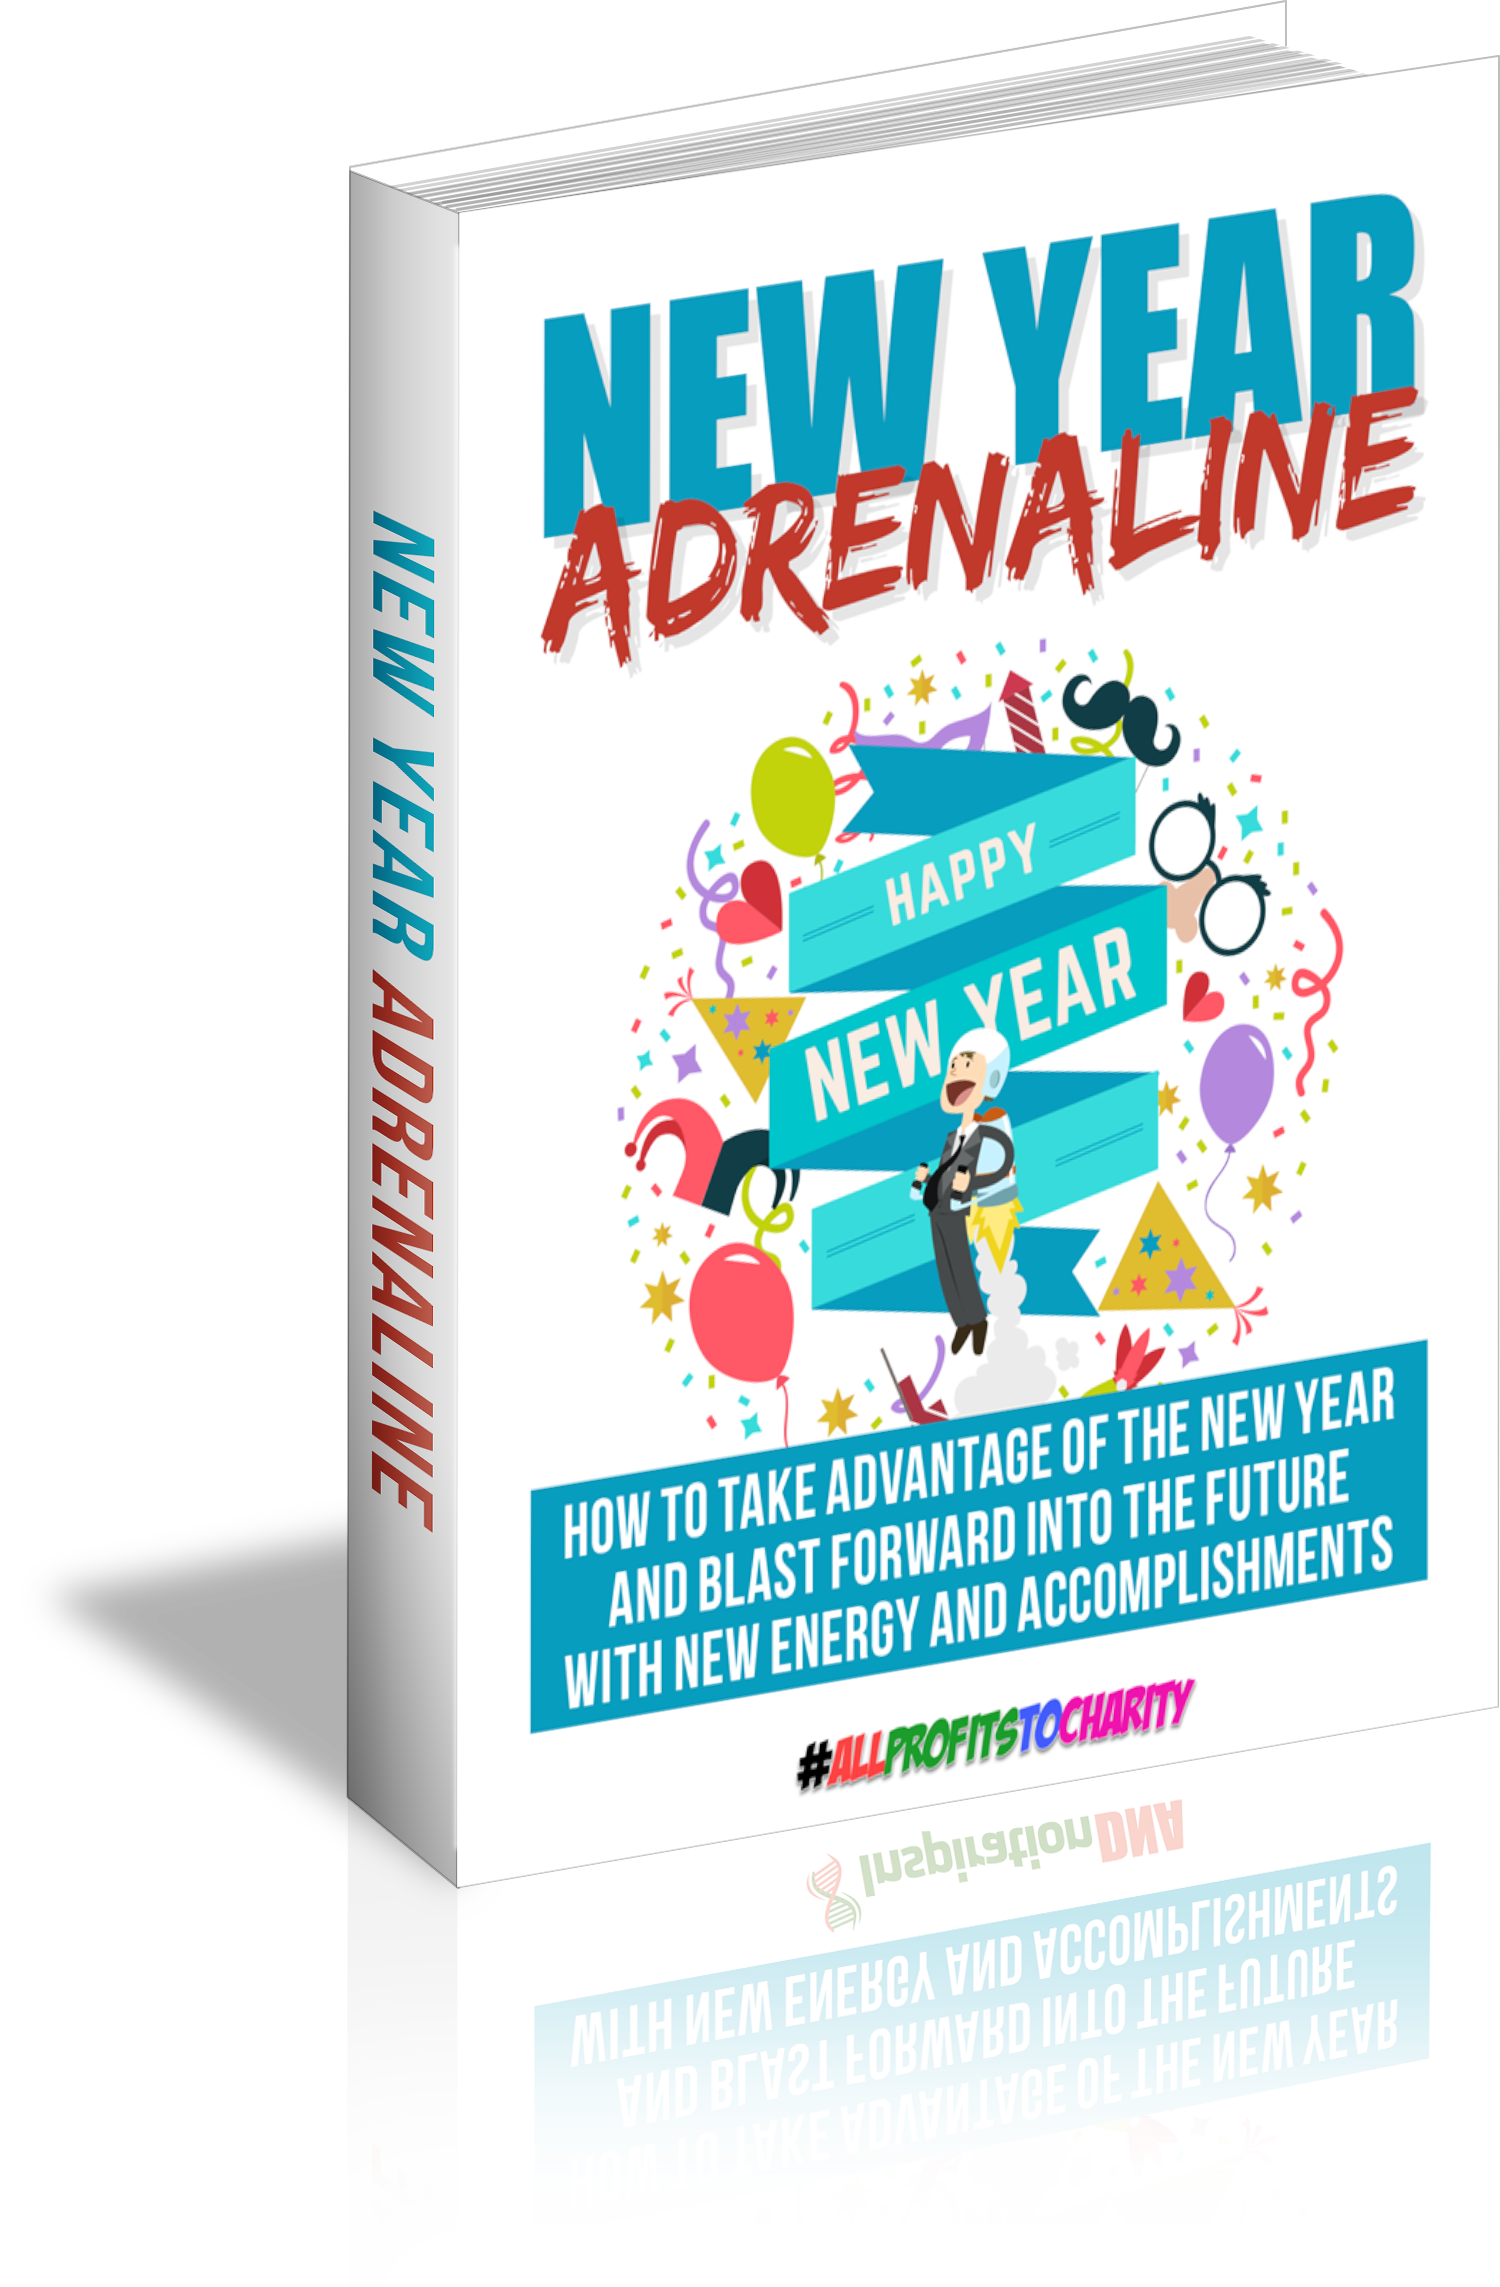 New Year Adrenaline cover